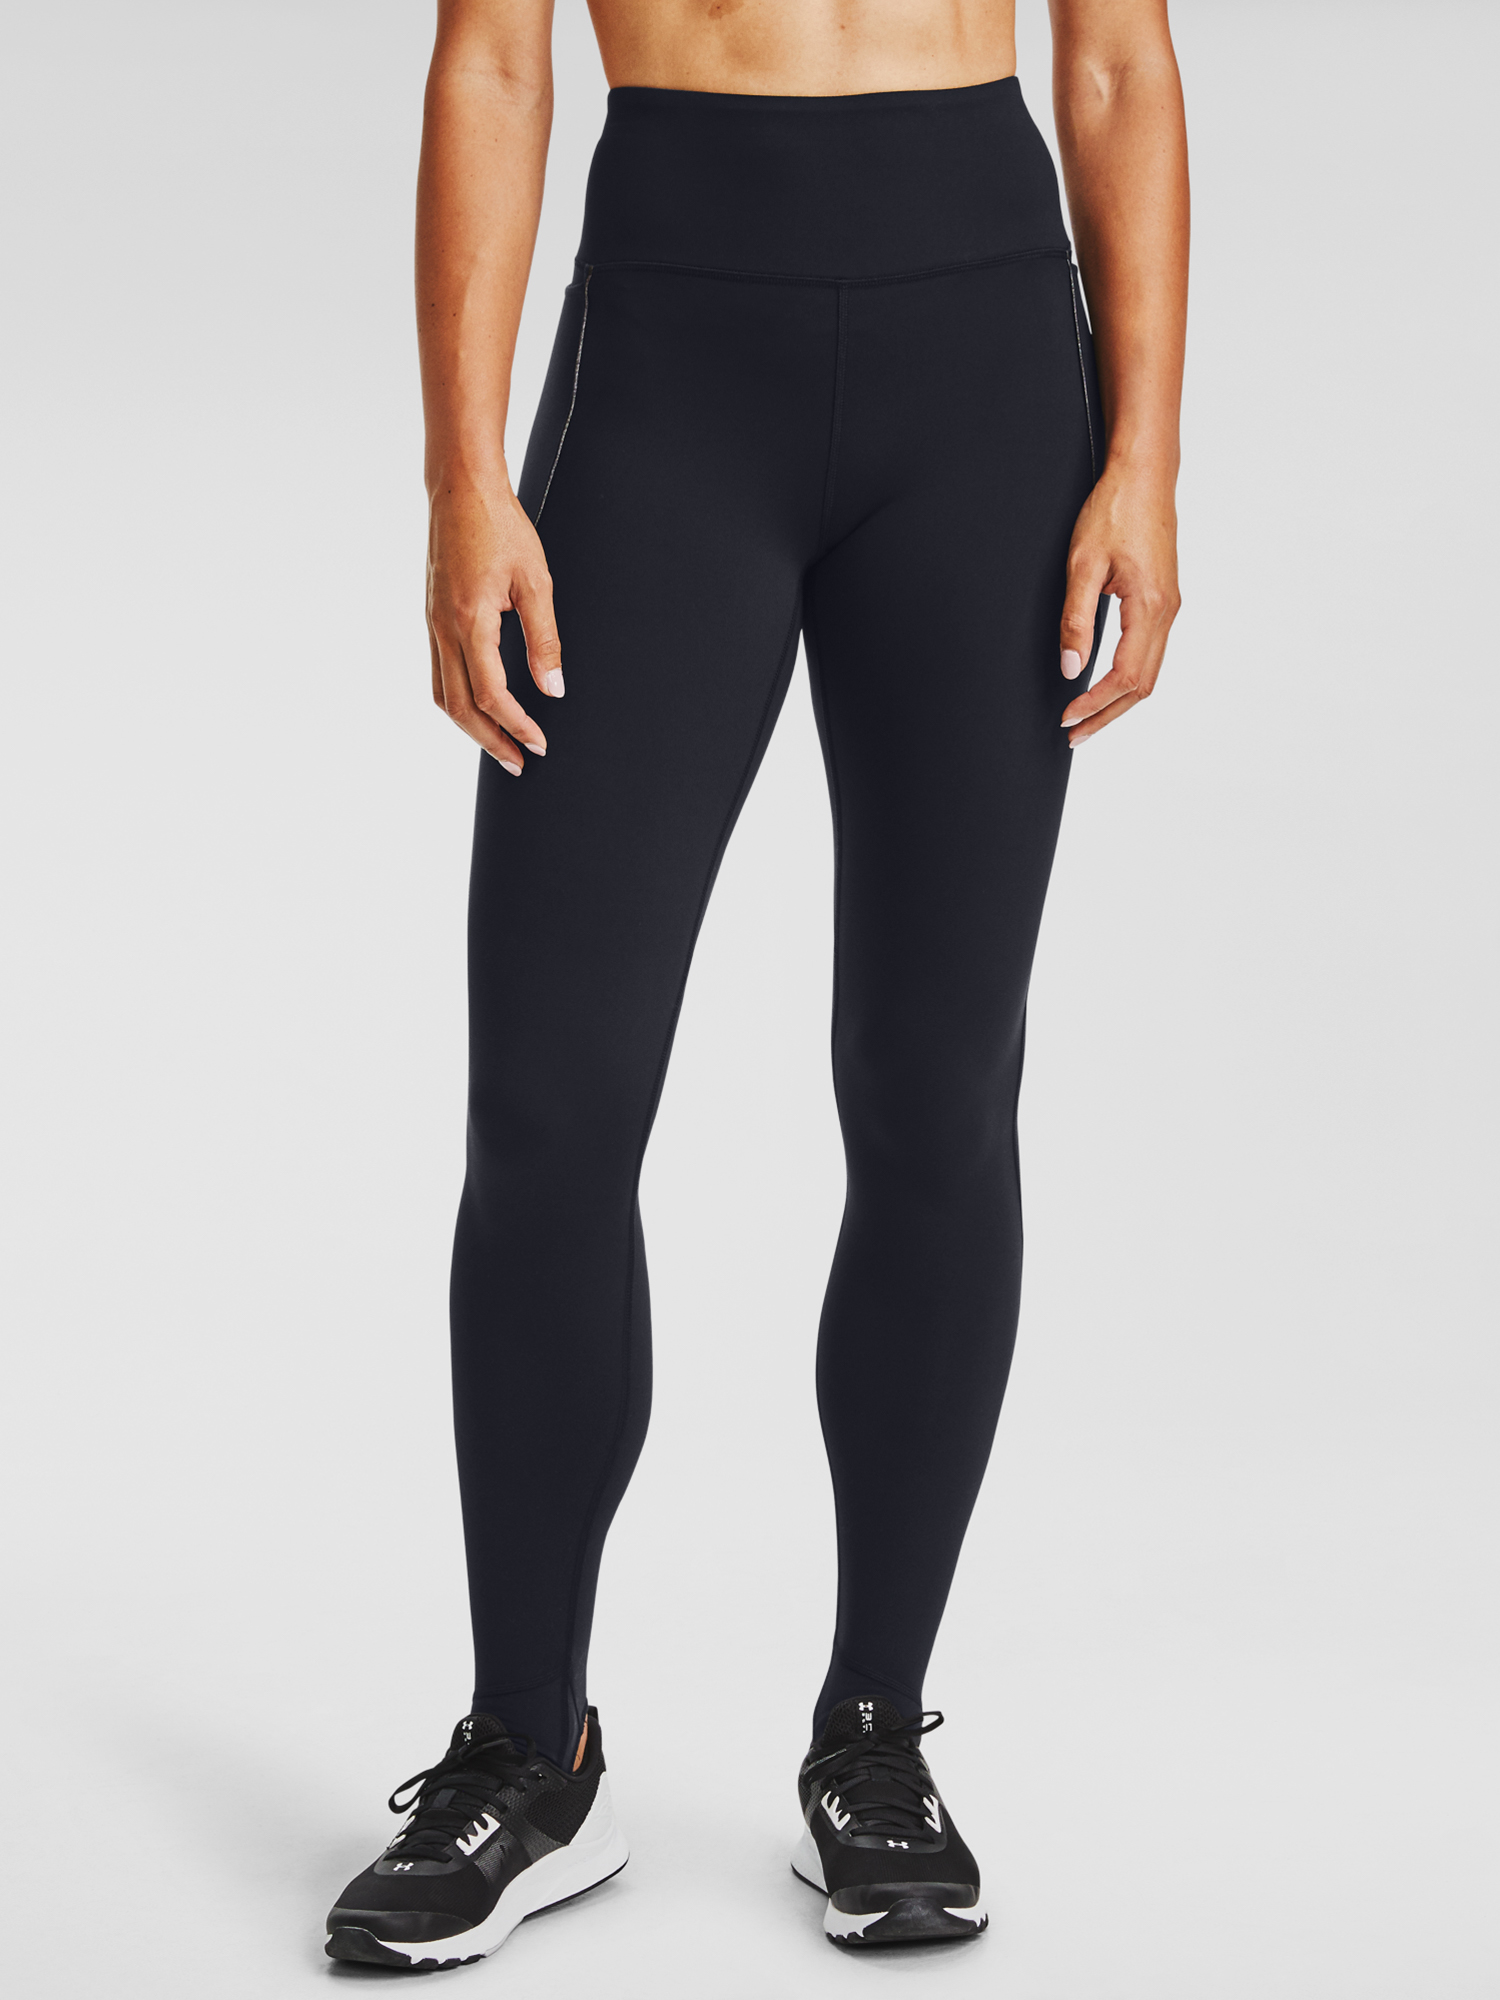 Legíny Under Armour  Meridian + MI Stirrup (1)